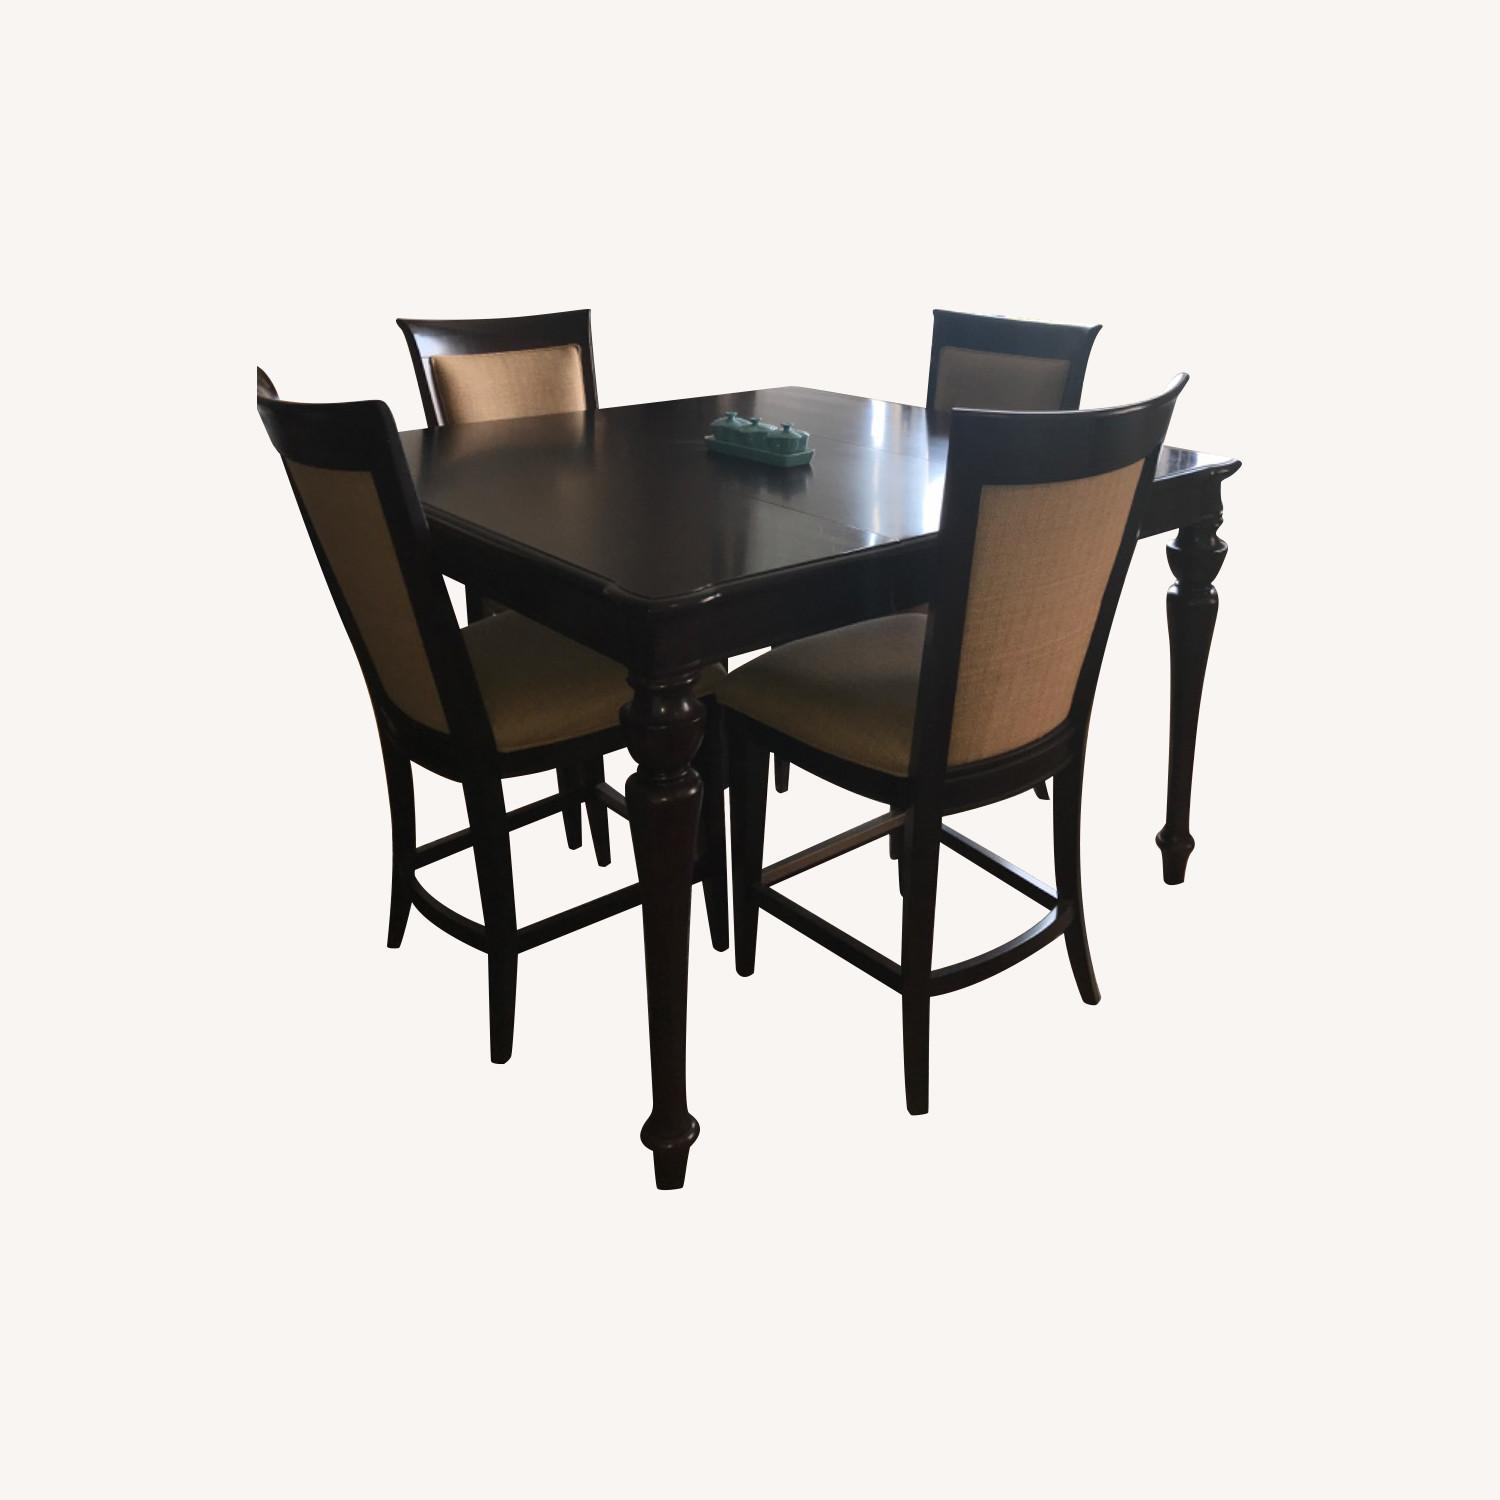 Havertys Copley Square Gathering Dining Table Set with Leaf - image-0